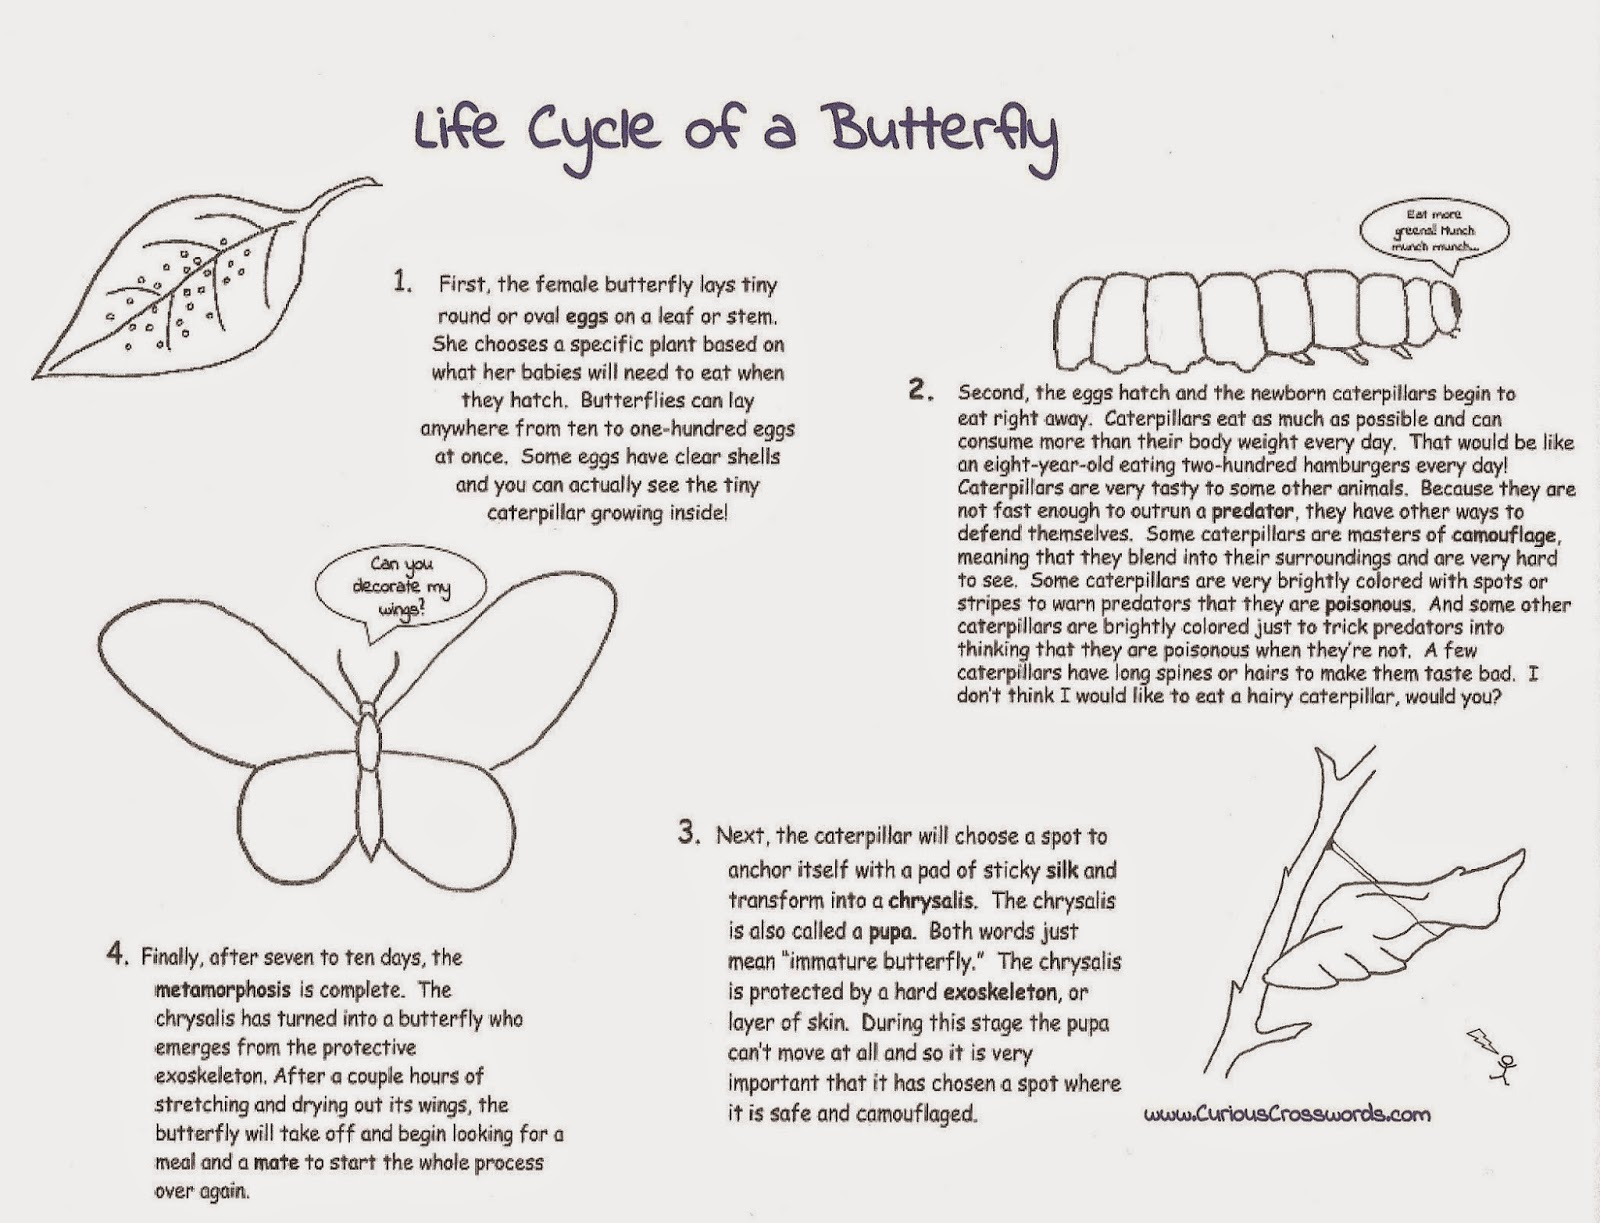 Curious Crosswords: Butterfly Printable with Crossword